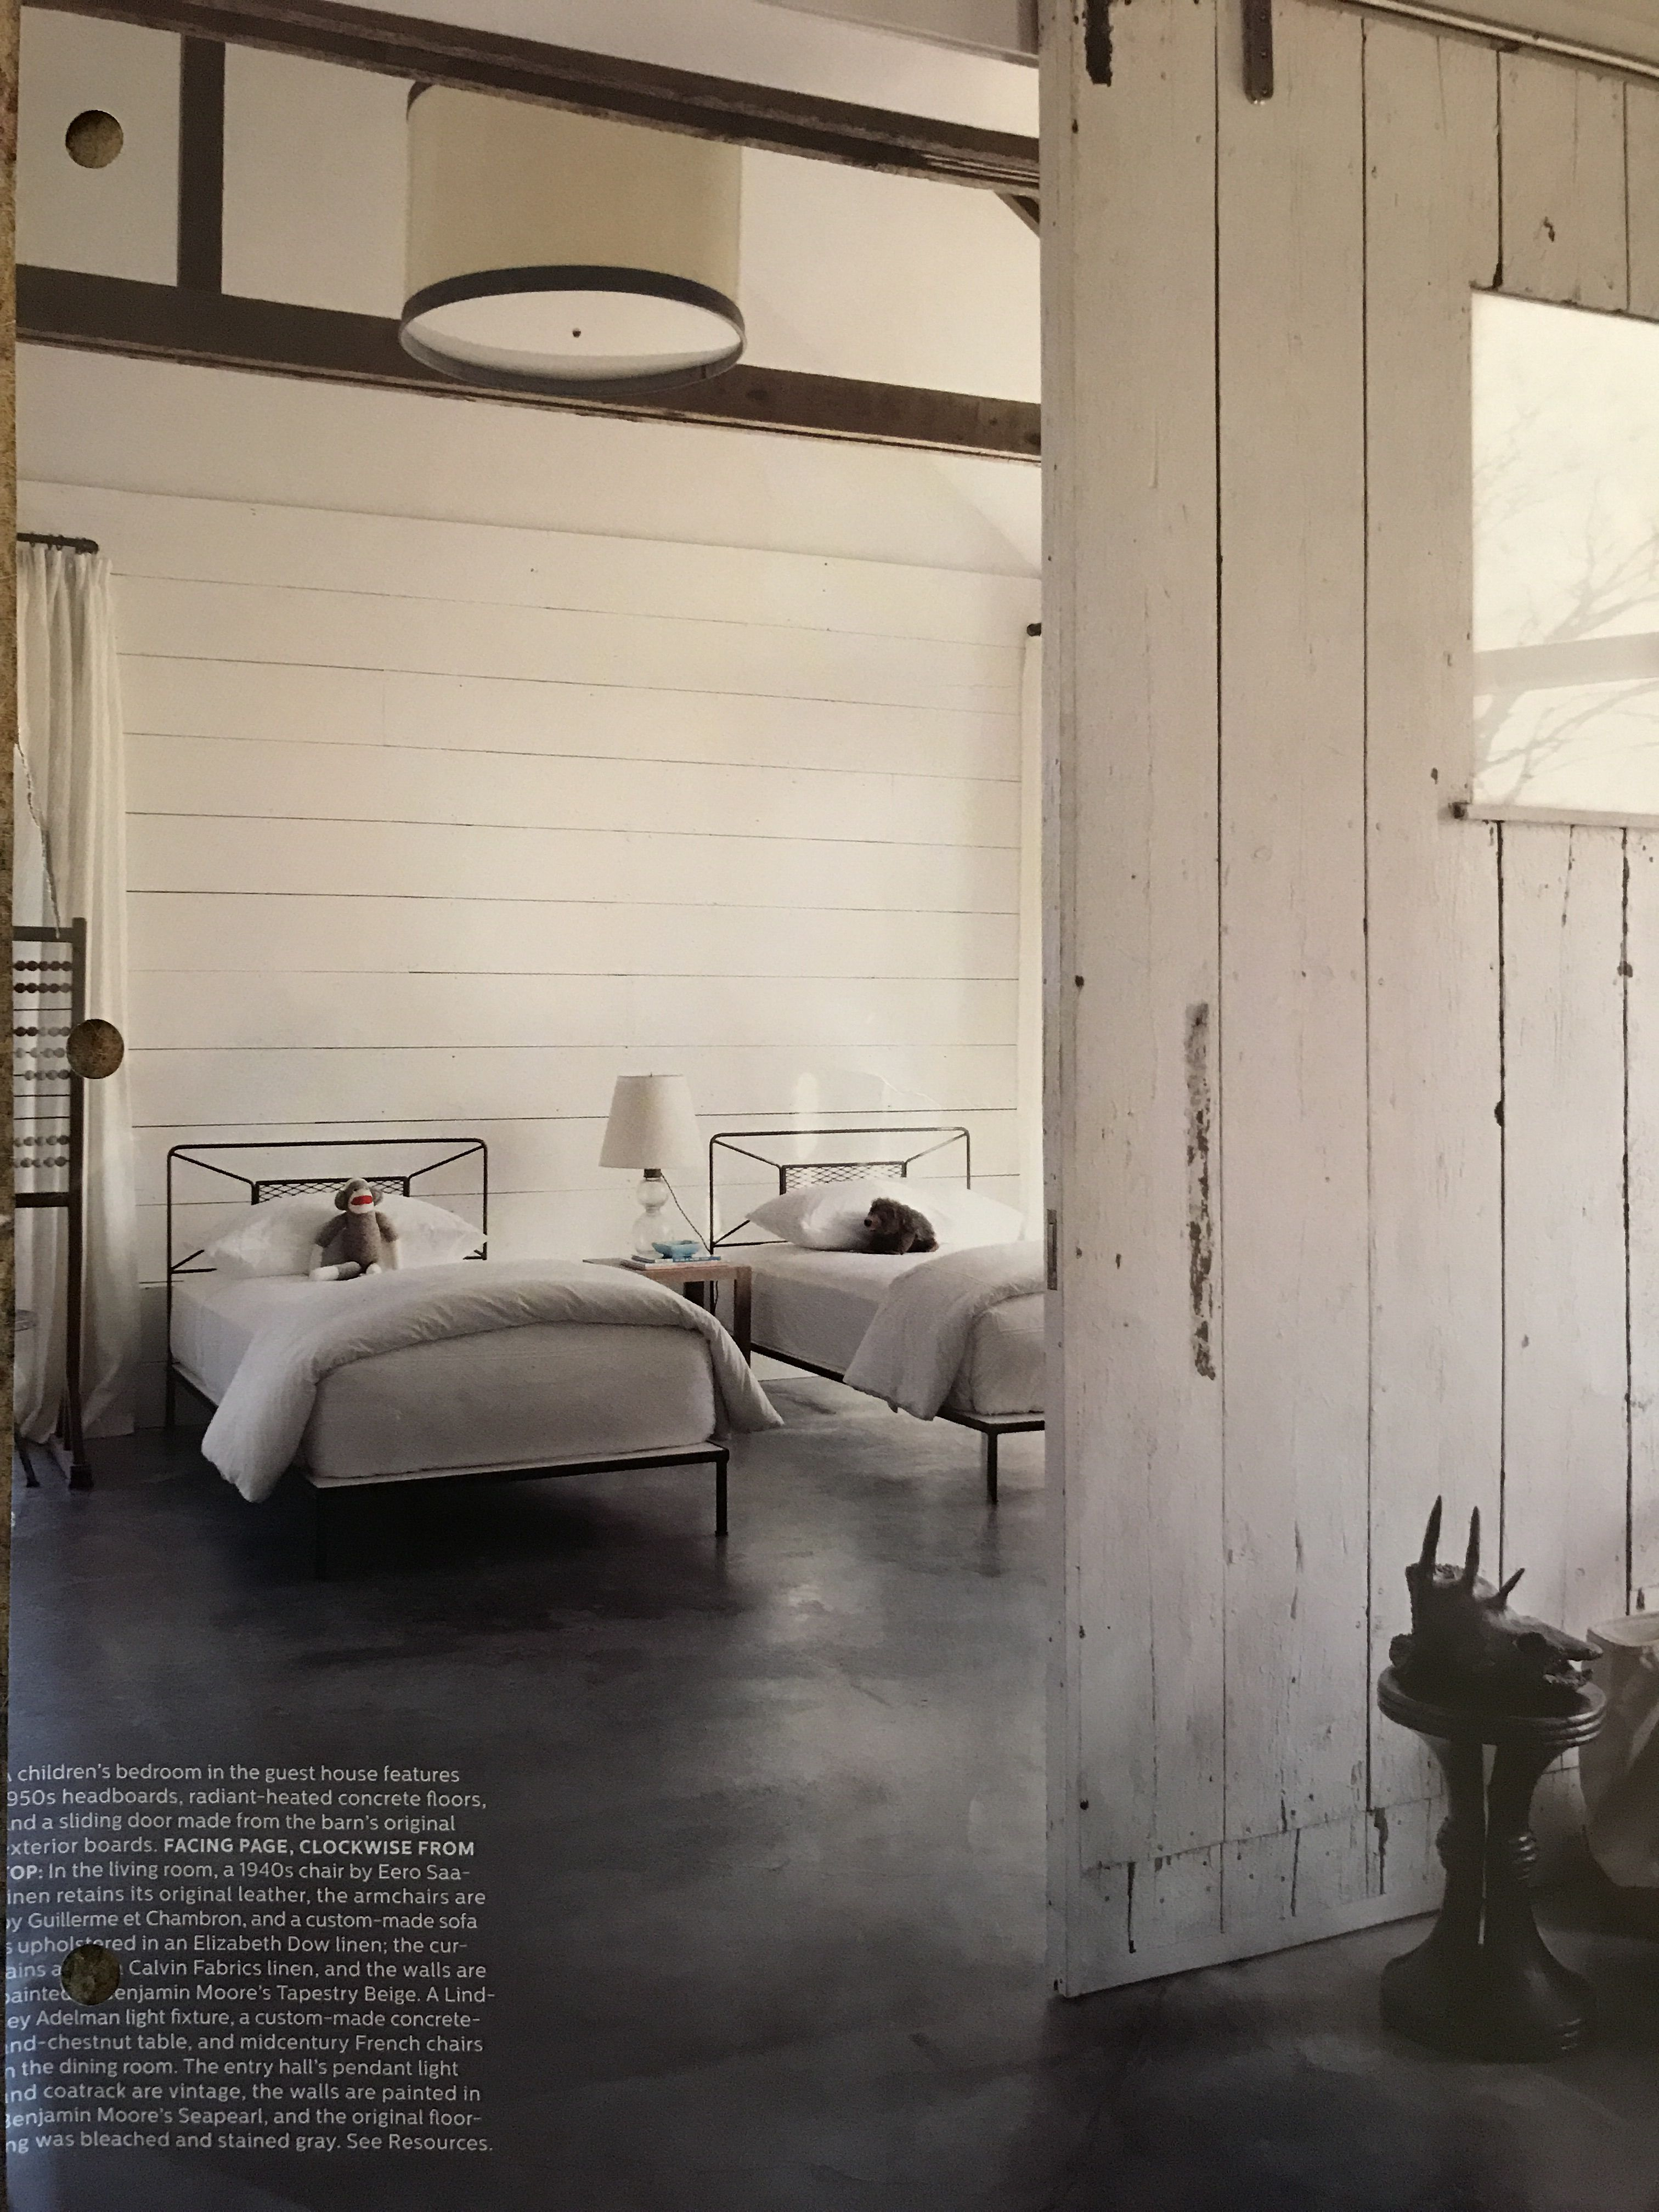 children   bedroom in the guest house features headboards radiant heated concrete floors and sliding door made from barn original exterior also best home design architecture images rh pinterest